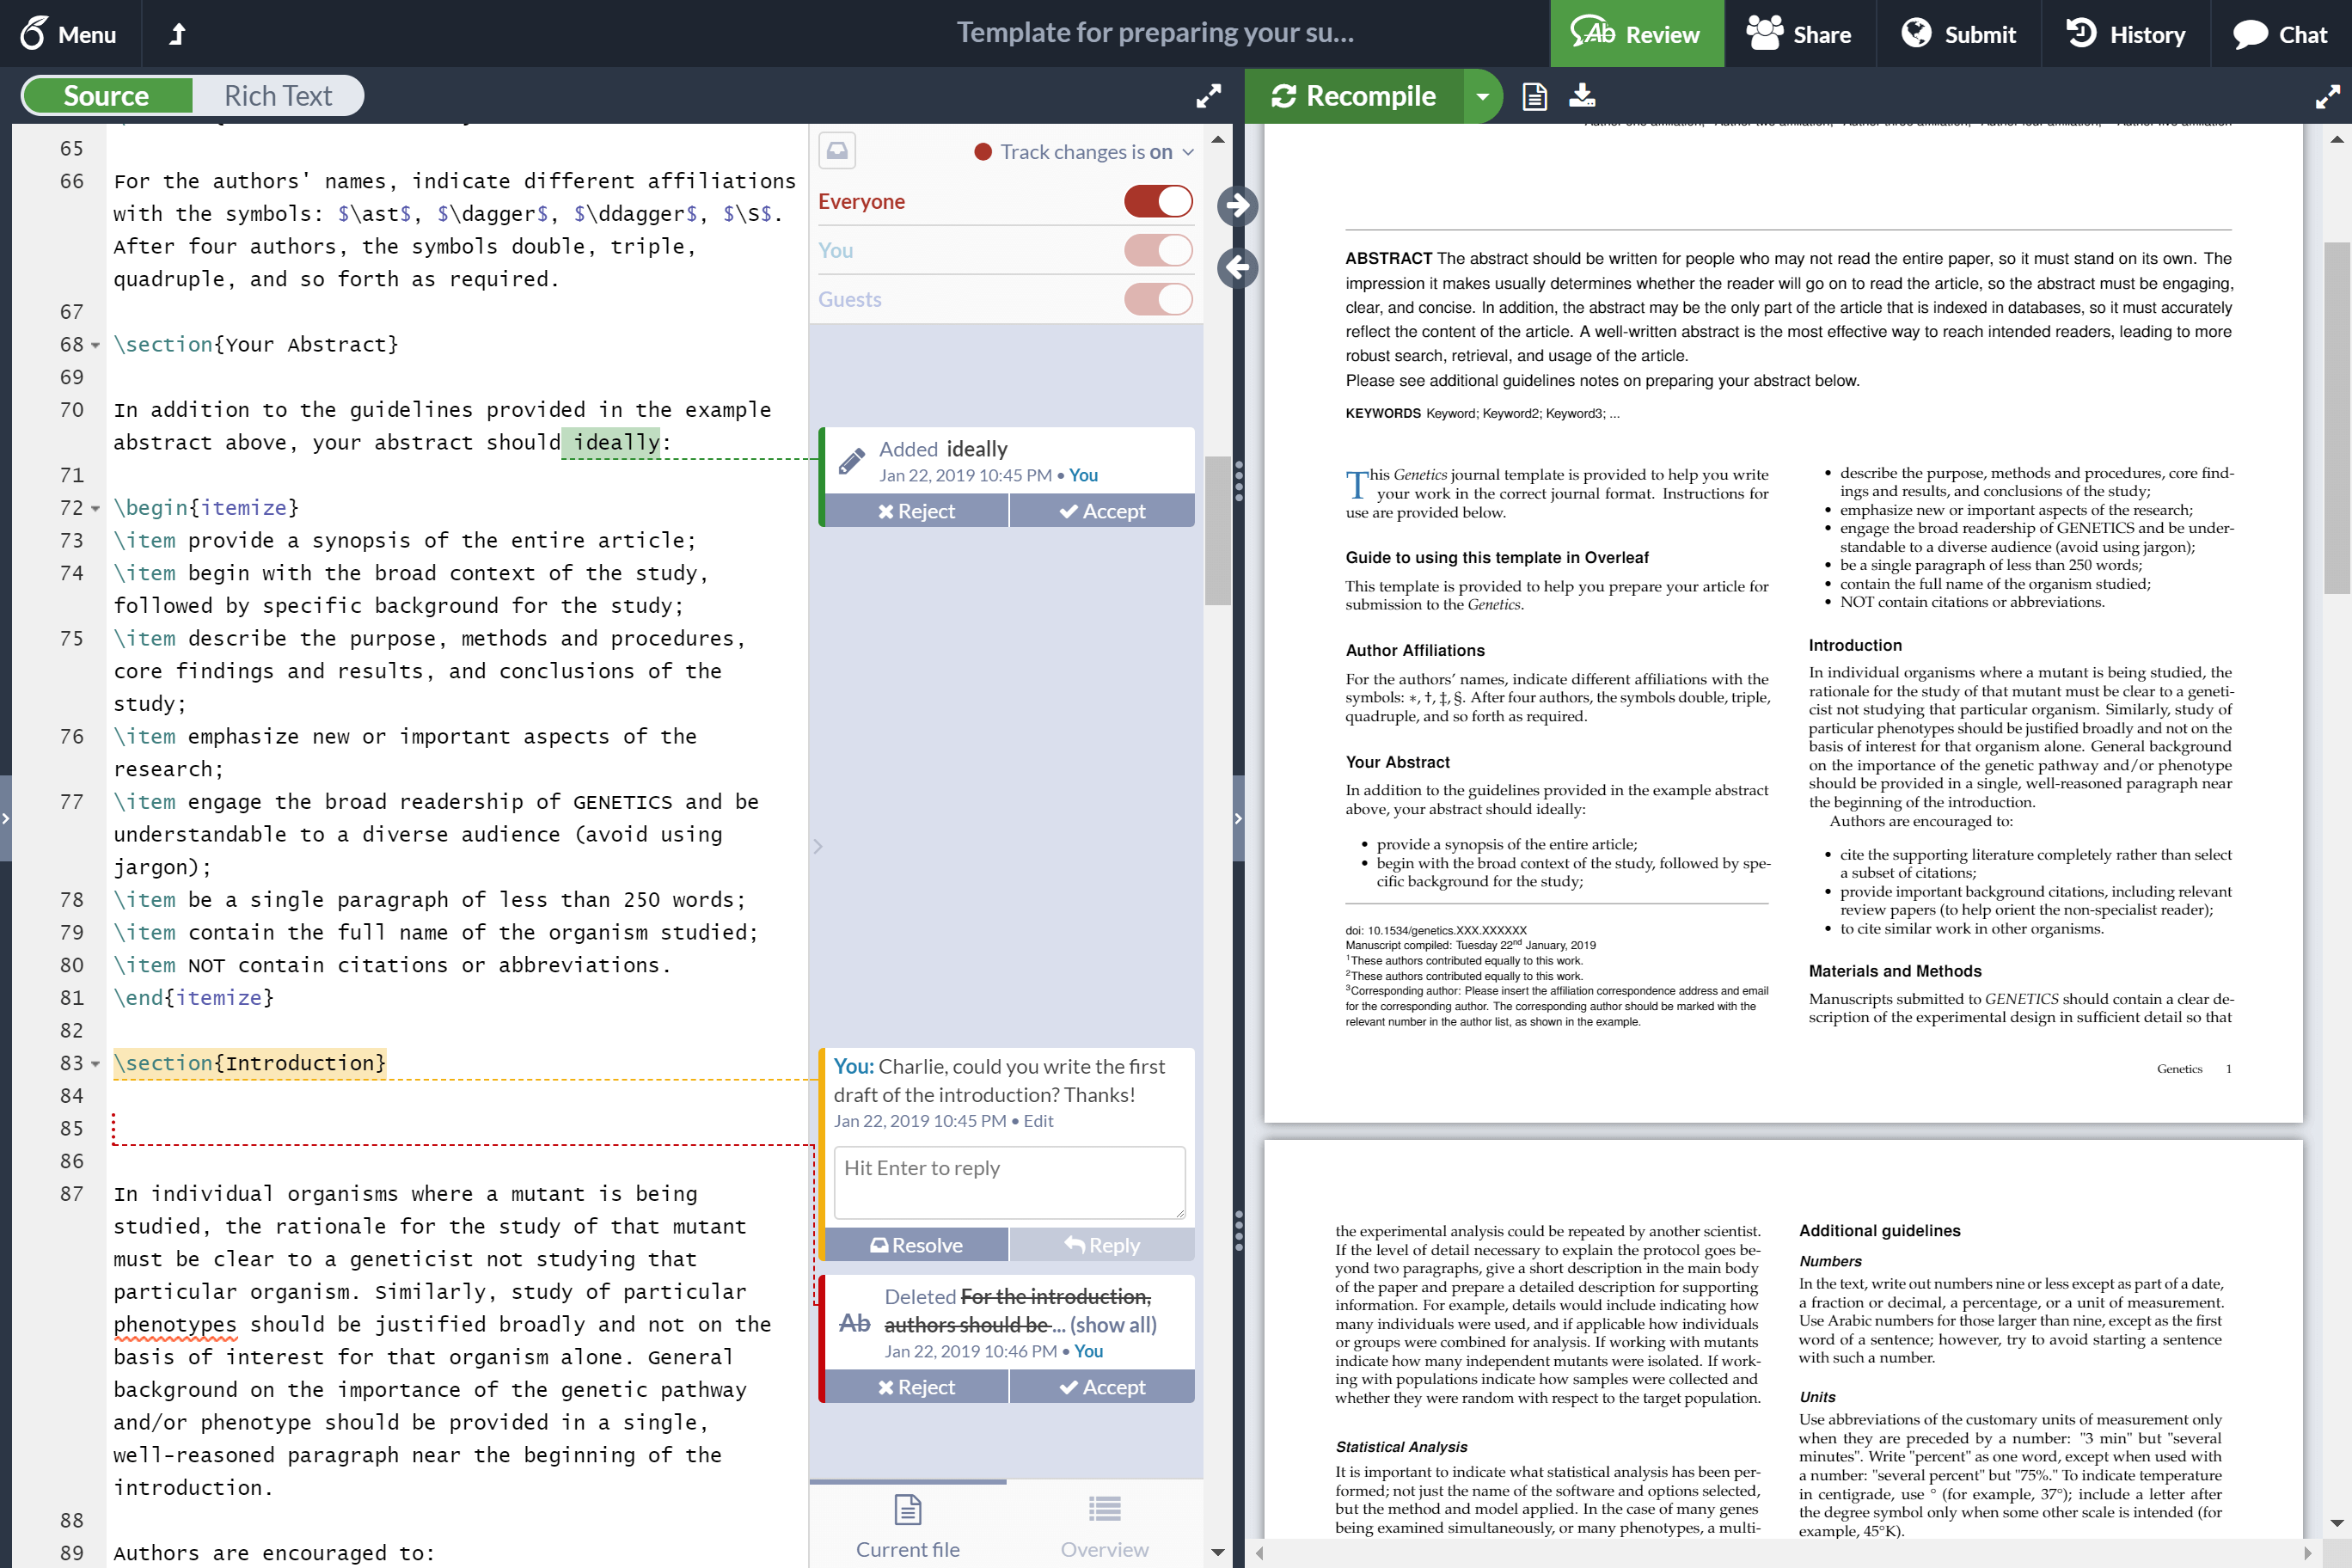 Overleaf-journal-template-source-trackchanges-example-b